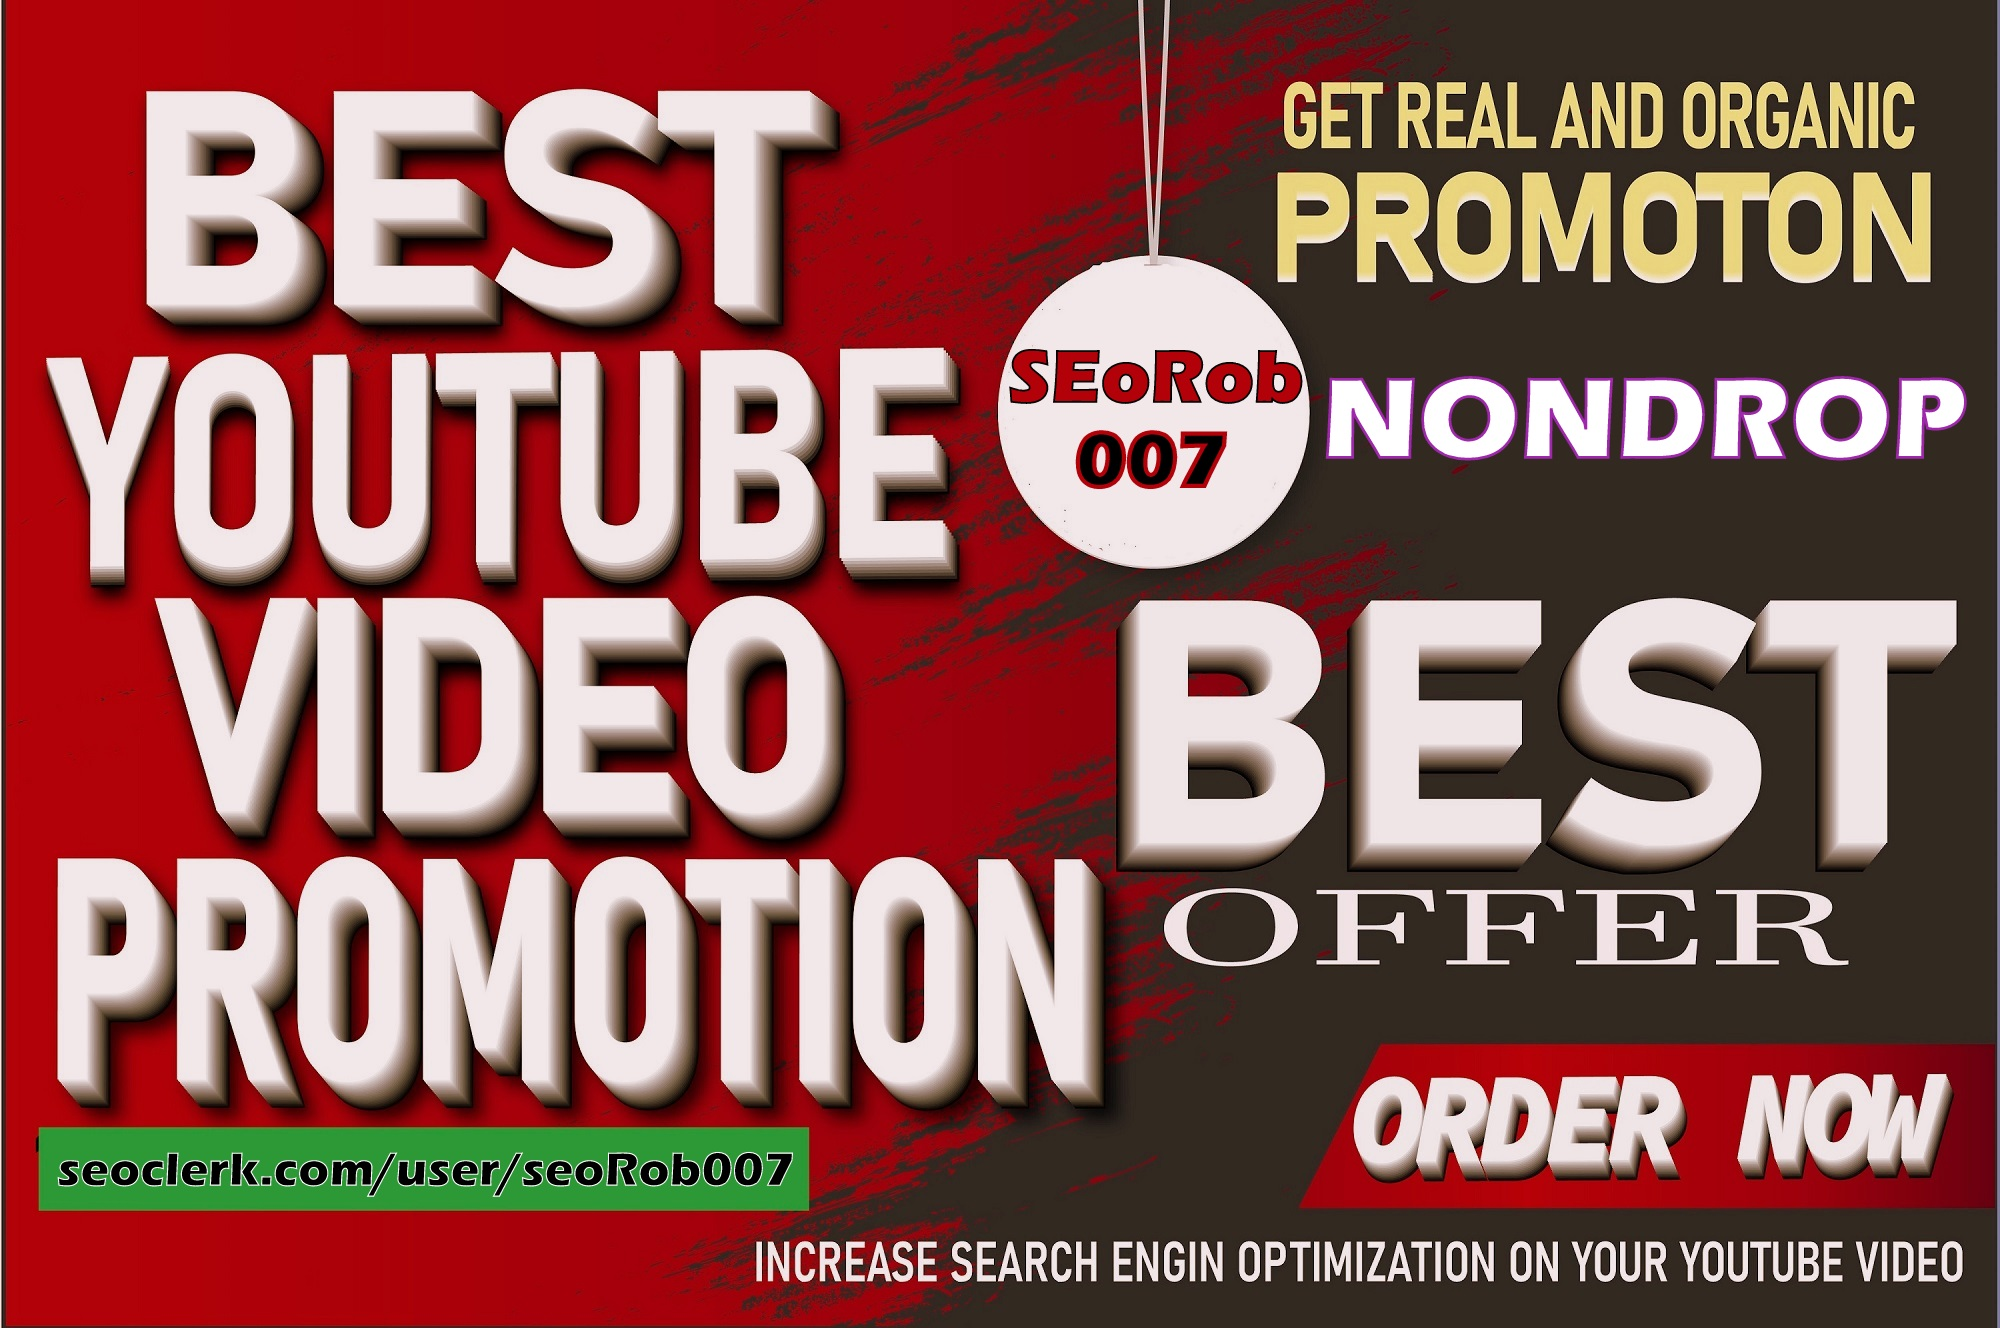 blow up your YOUTUBE video,  NON DROP fast Guaranteed